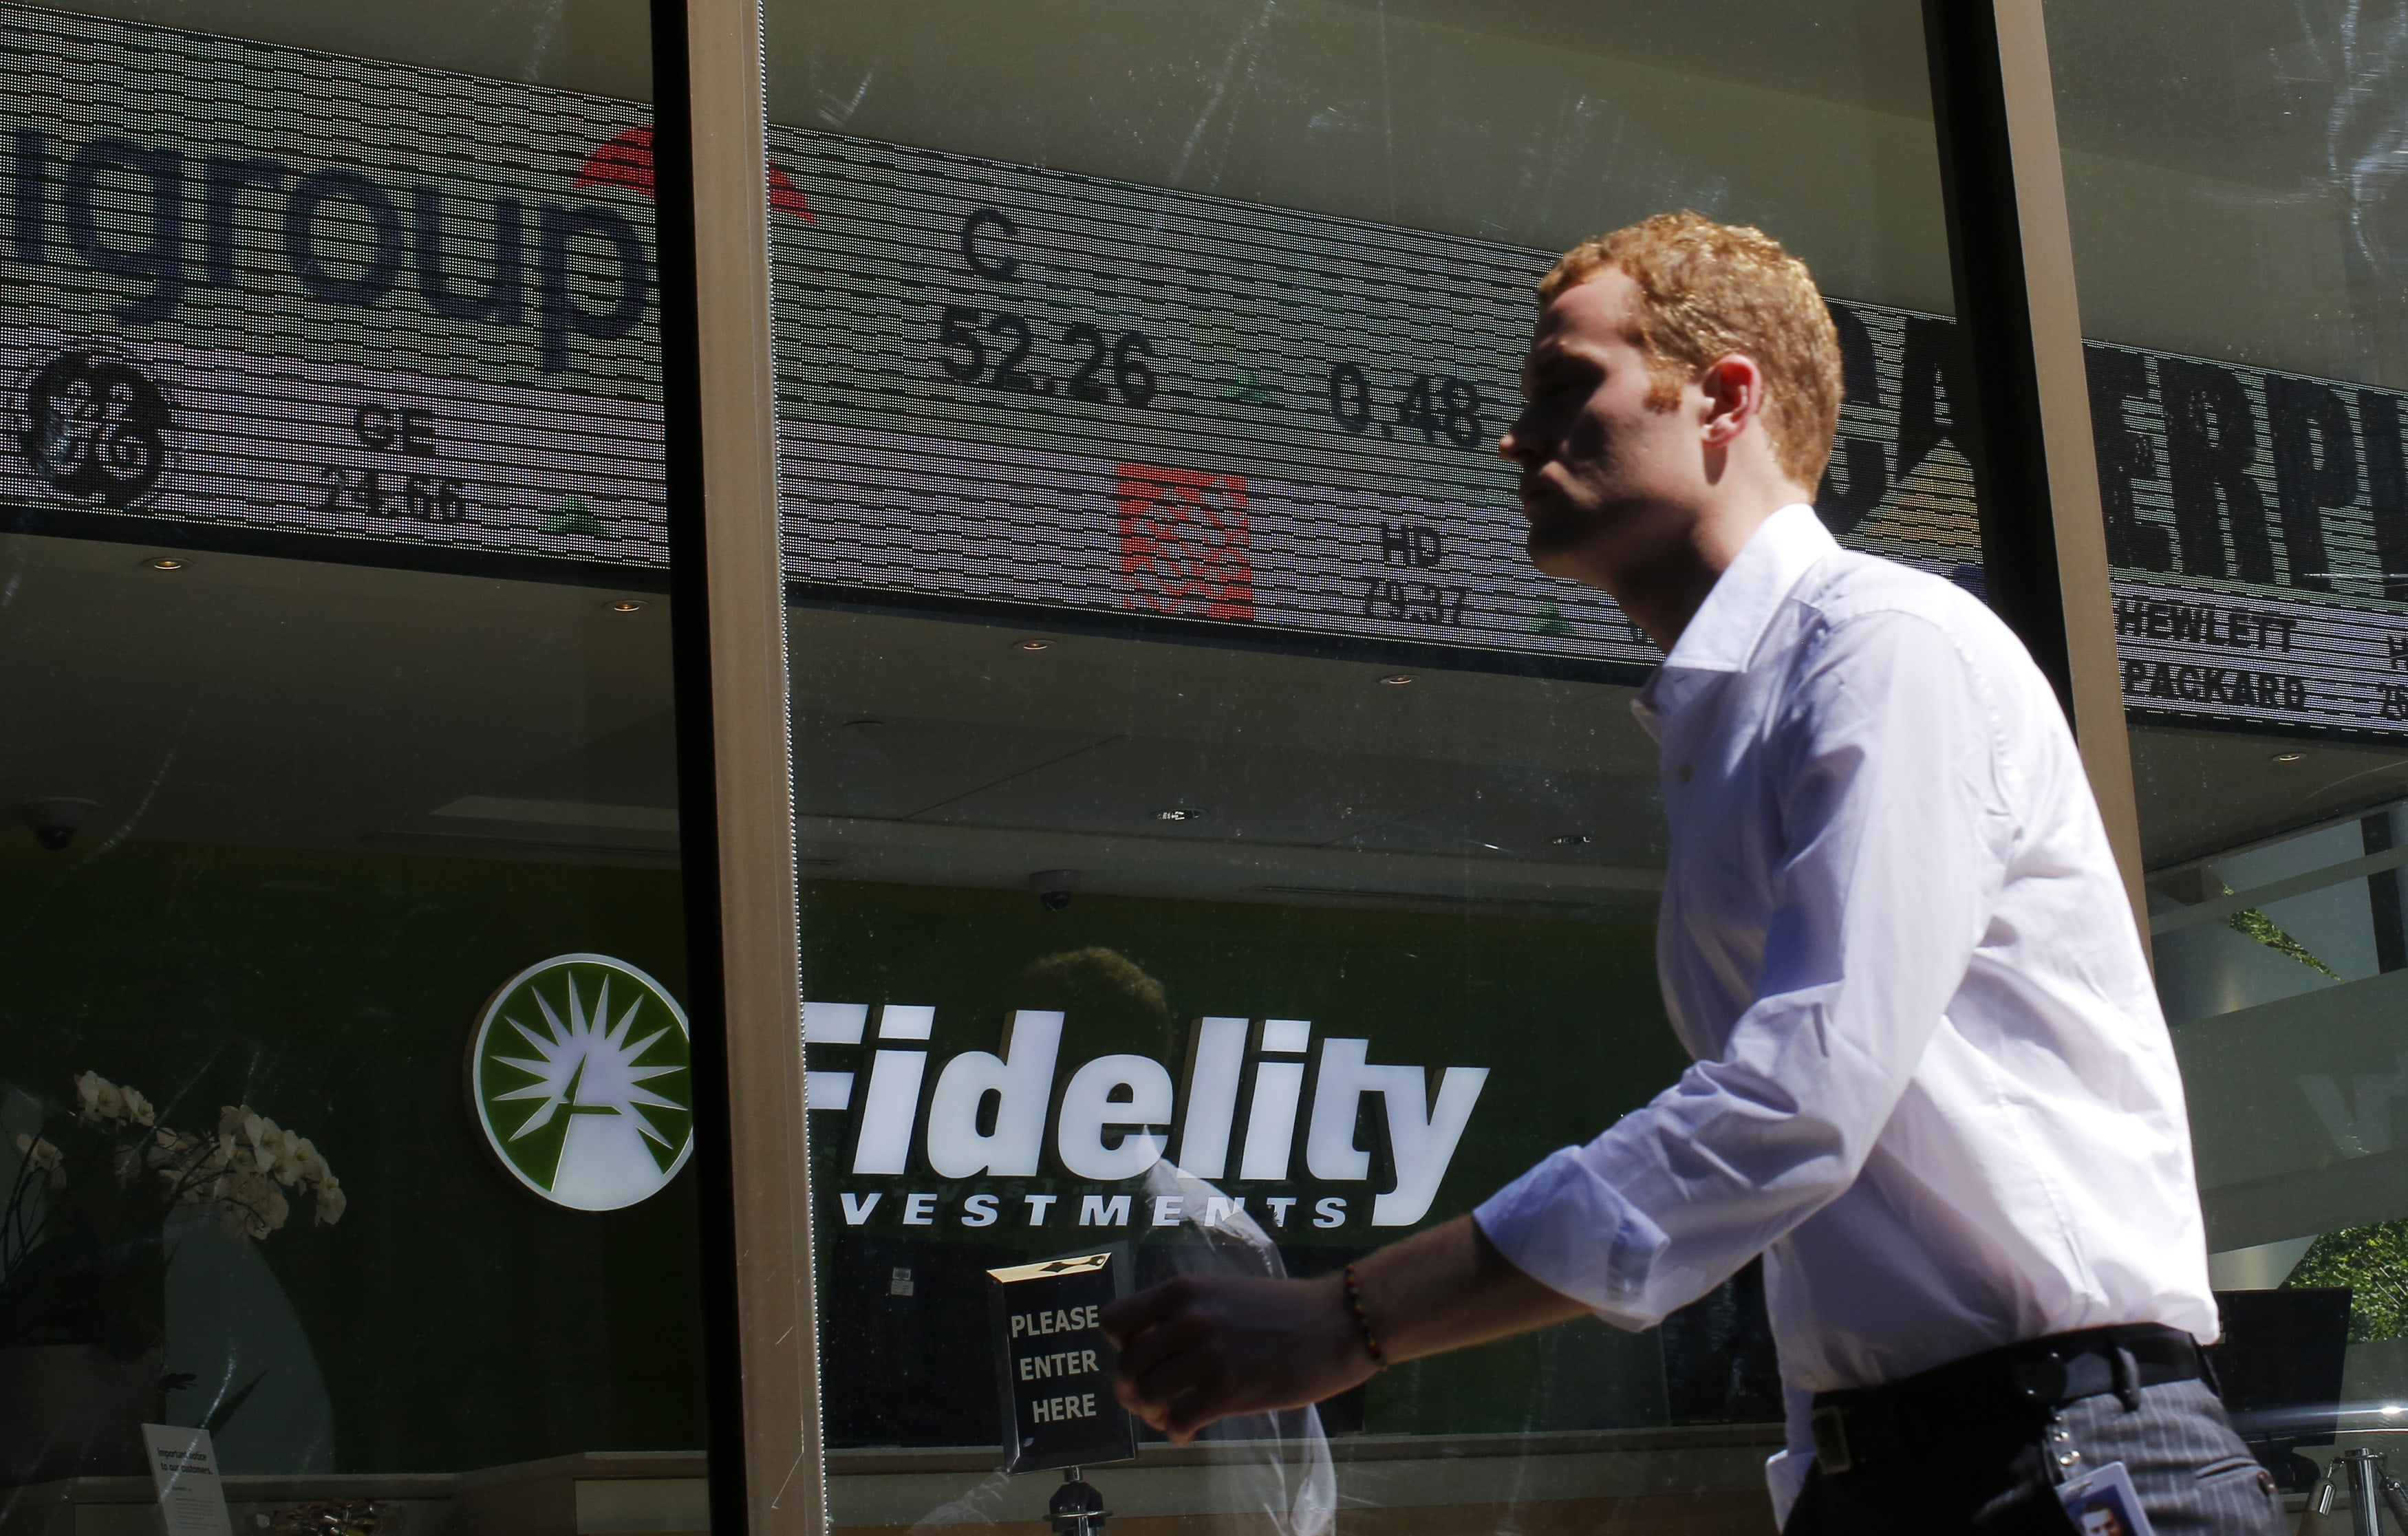 Fidelity Stock Quotes Fidelity Says It Saw No Panic Among Its Customers And More Buying